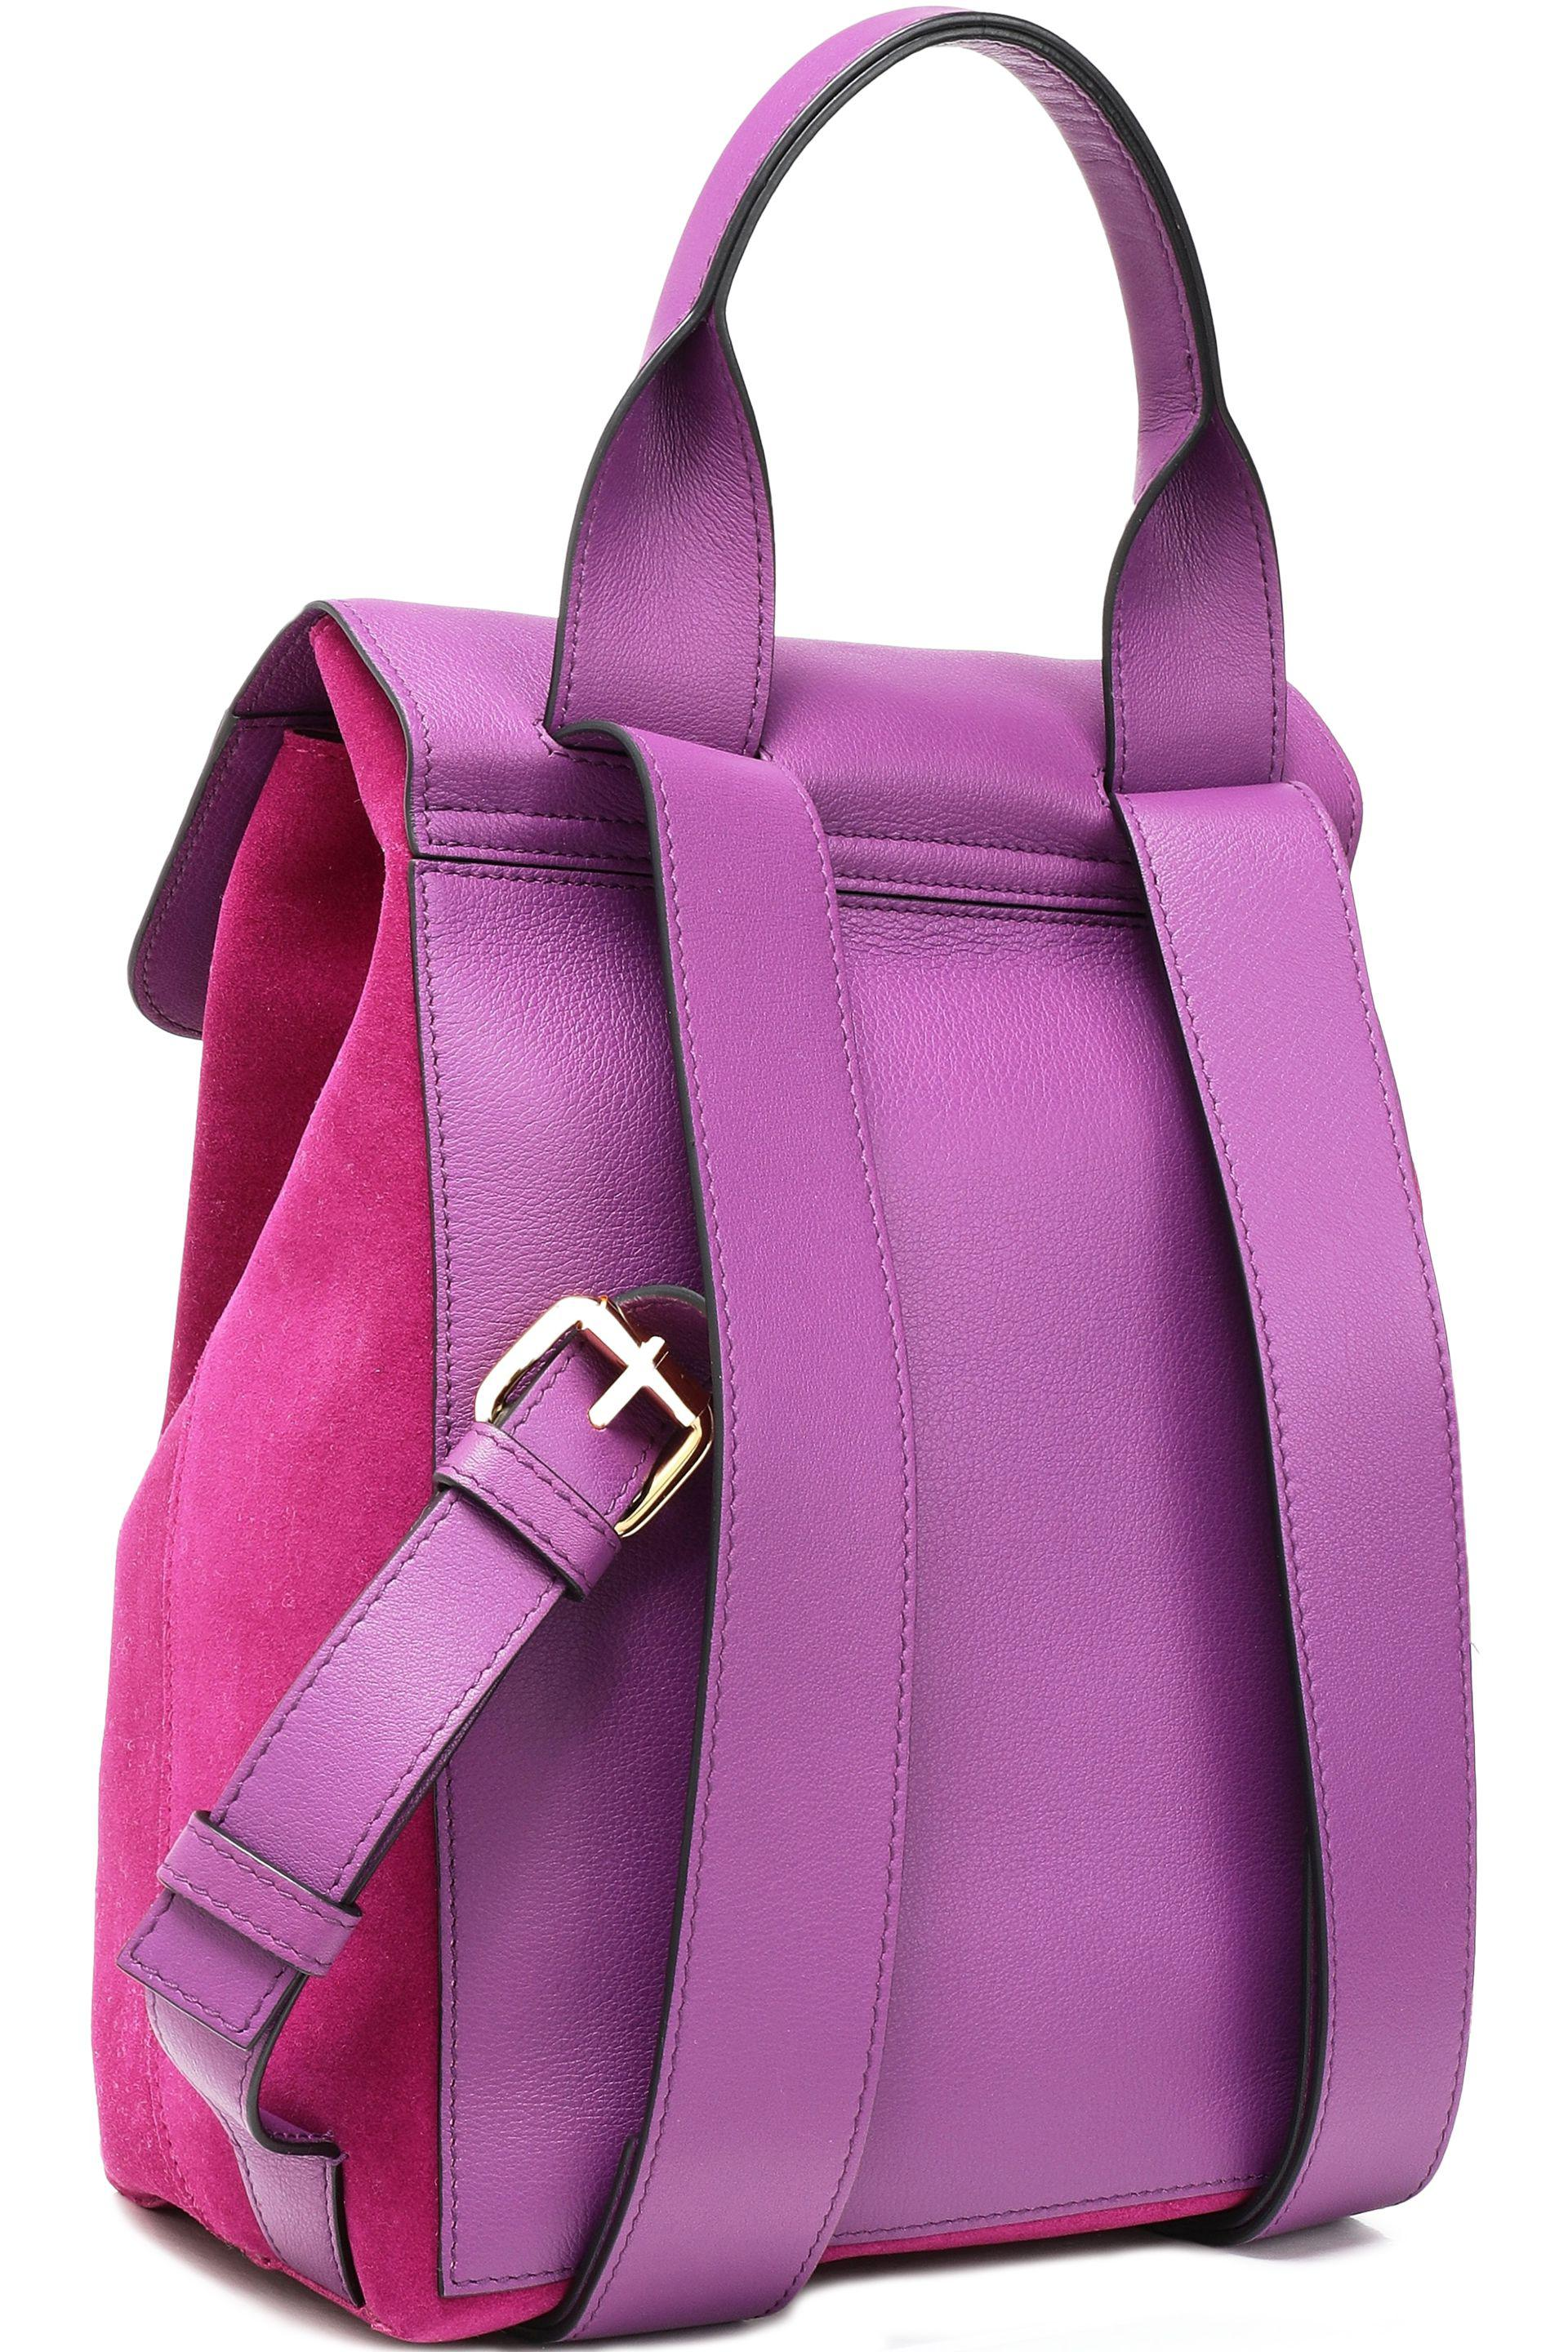 JW Anderson Pierce Leather And Suede Backpack in Magenta (Purple)